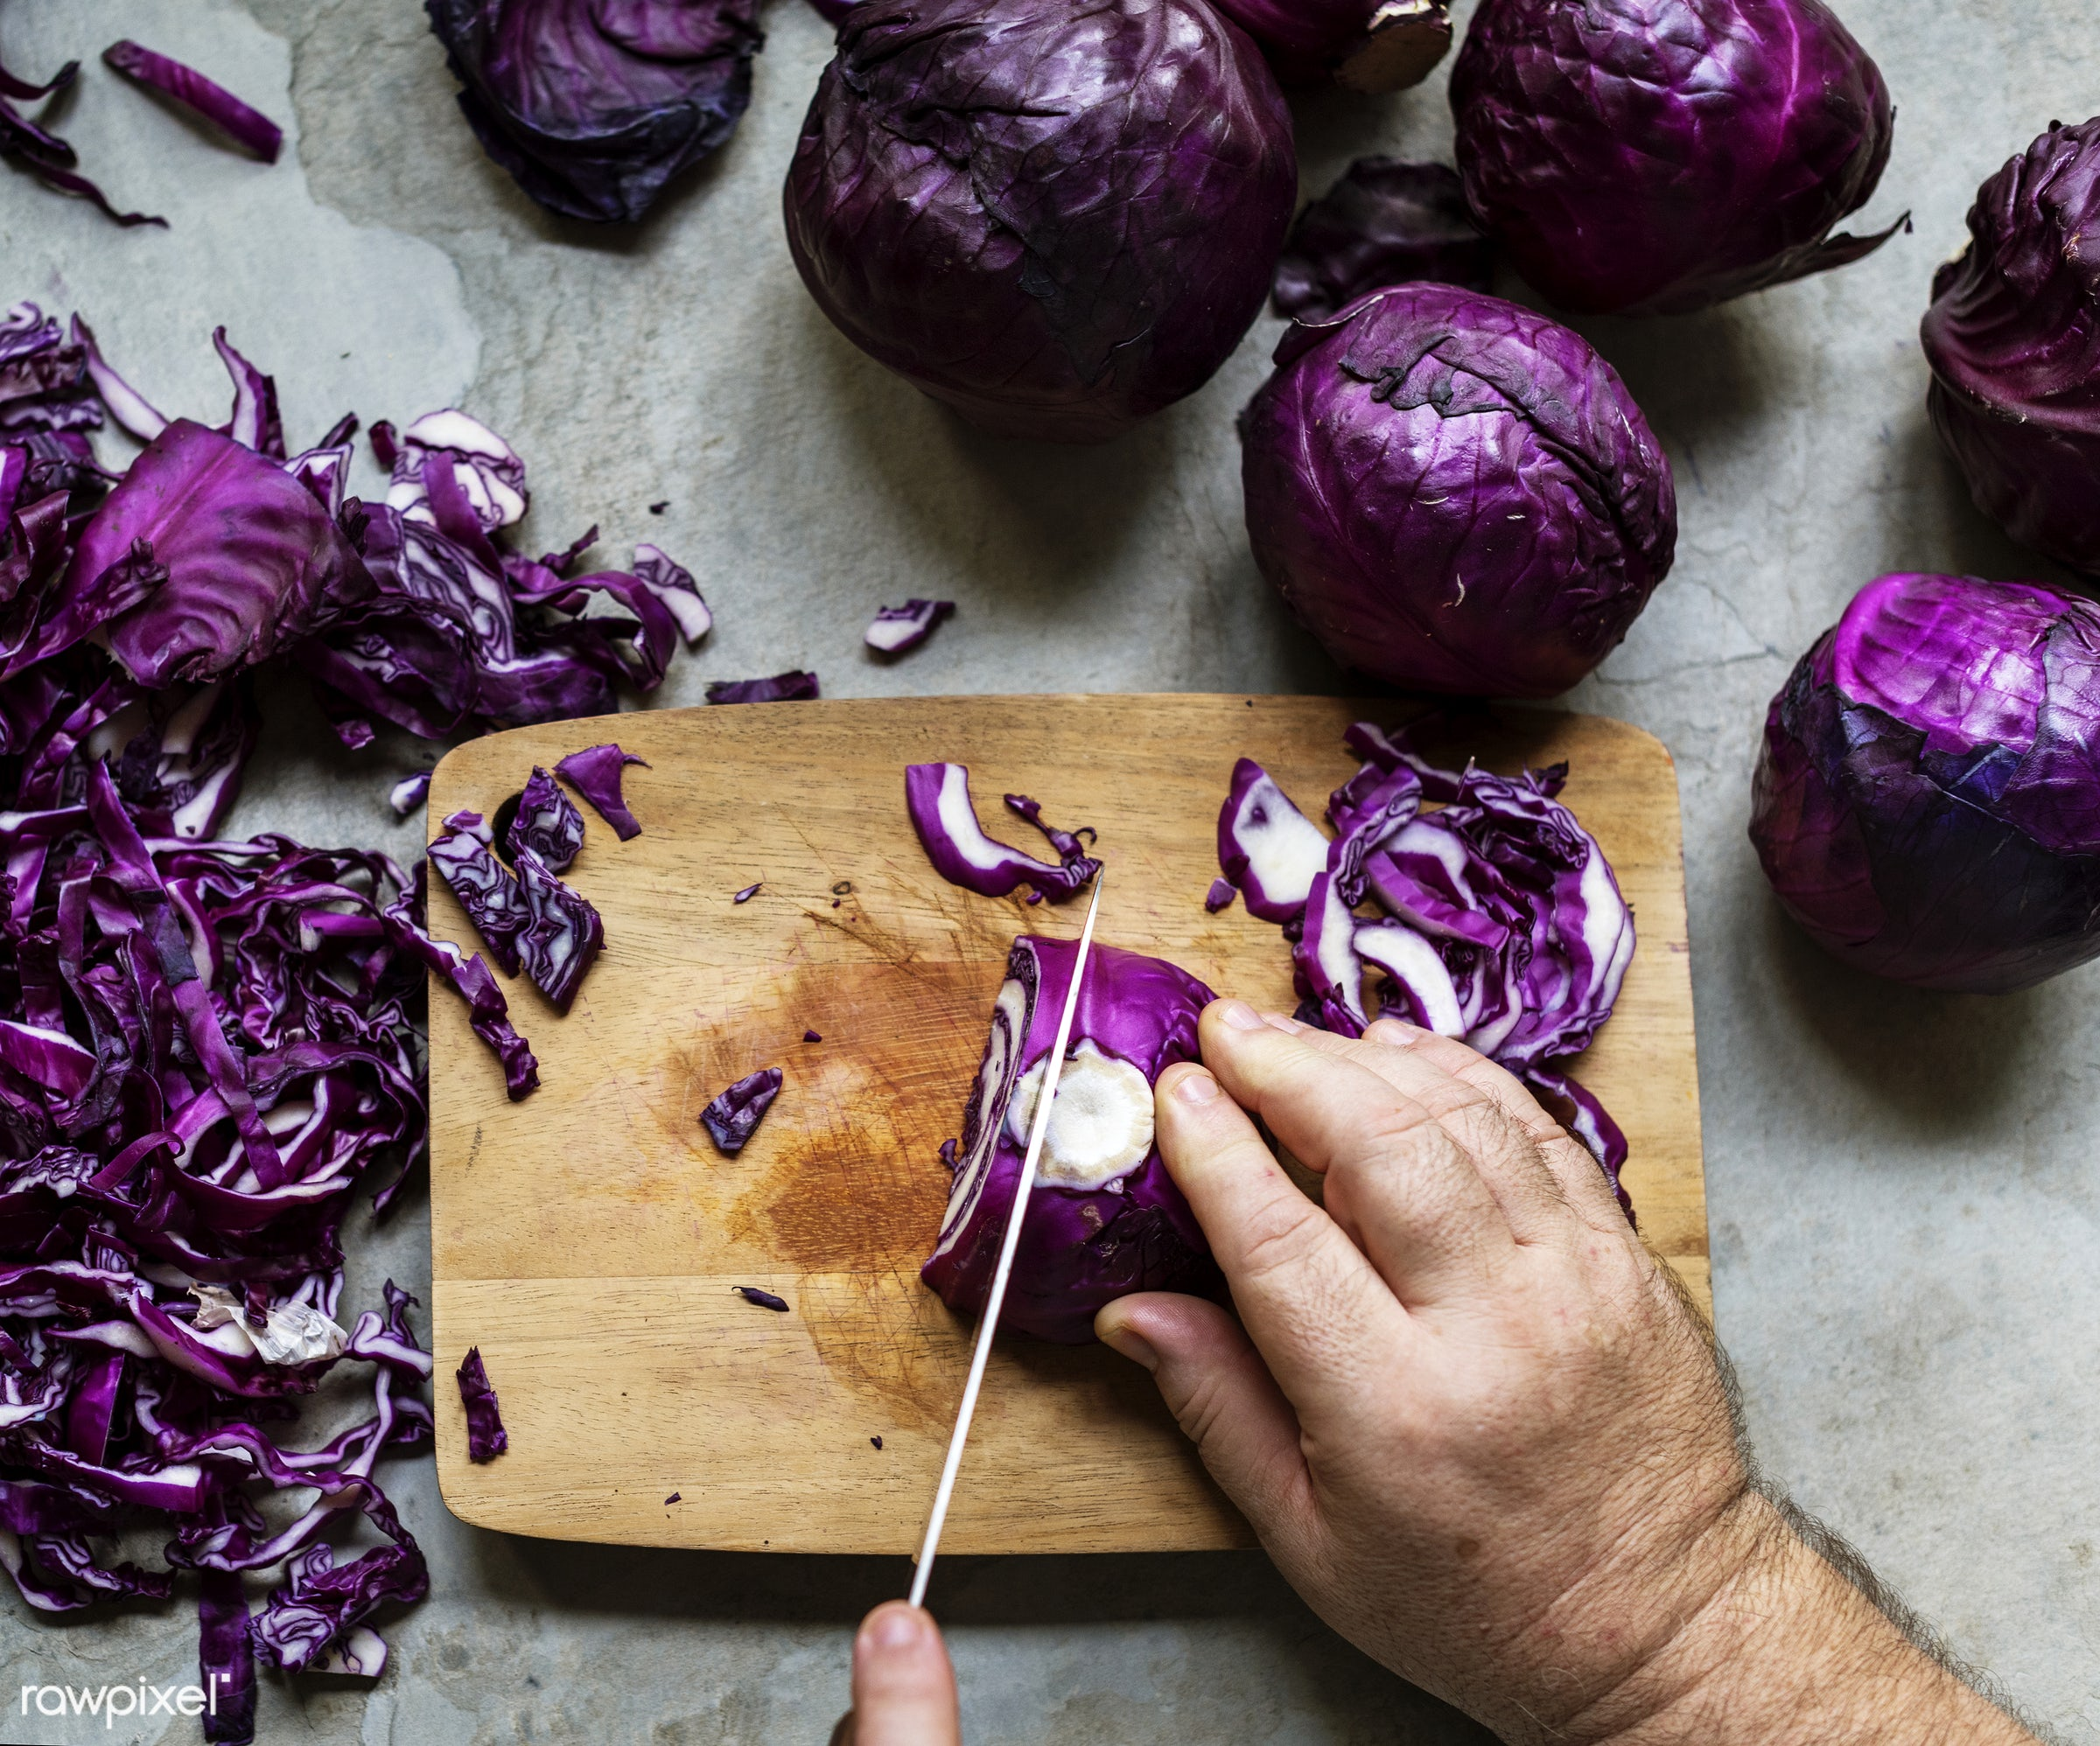 raw, red cabbage, diverse, chopping board, farm, ingredients, nature, farmer, fresh, hands, products, closeup, knife, cut...